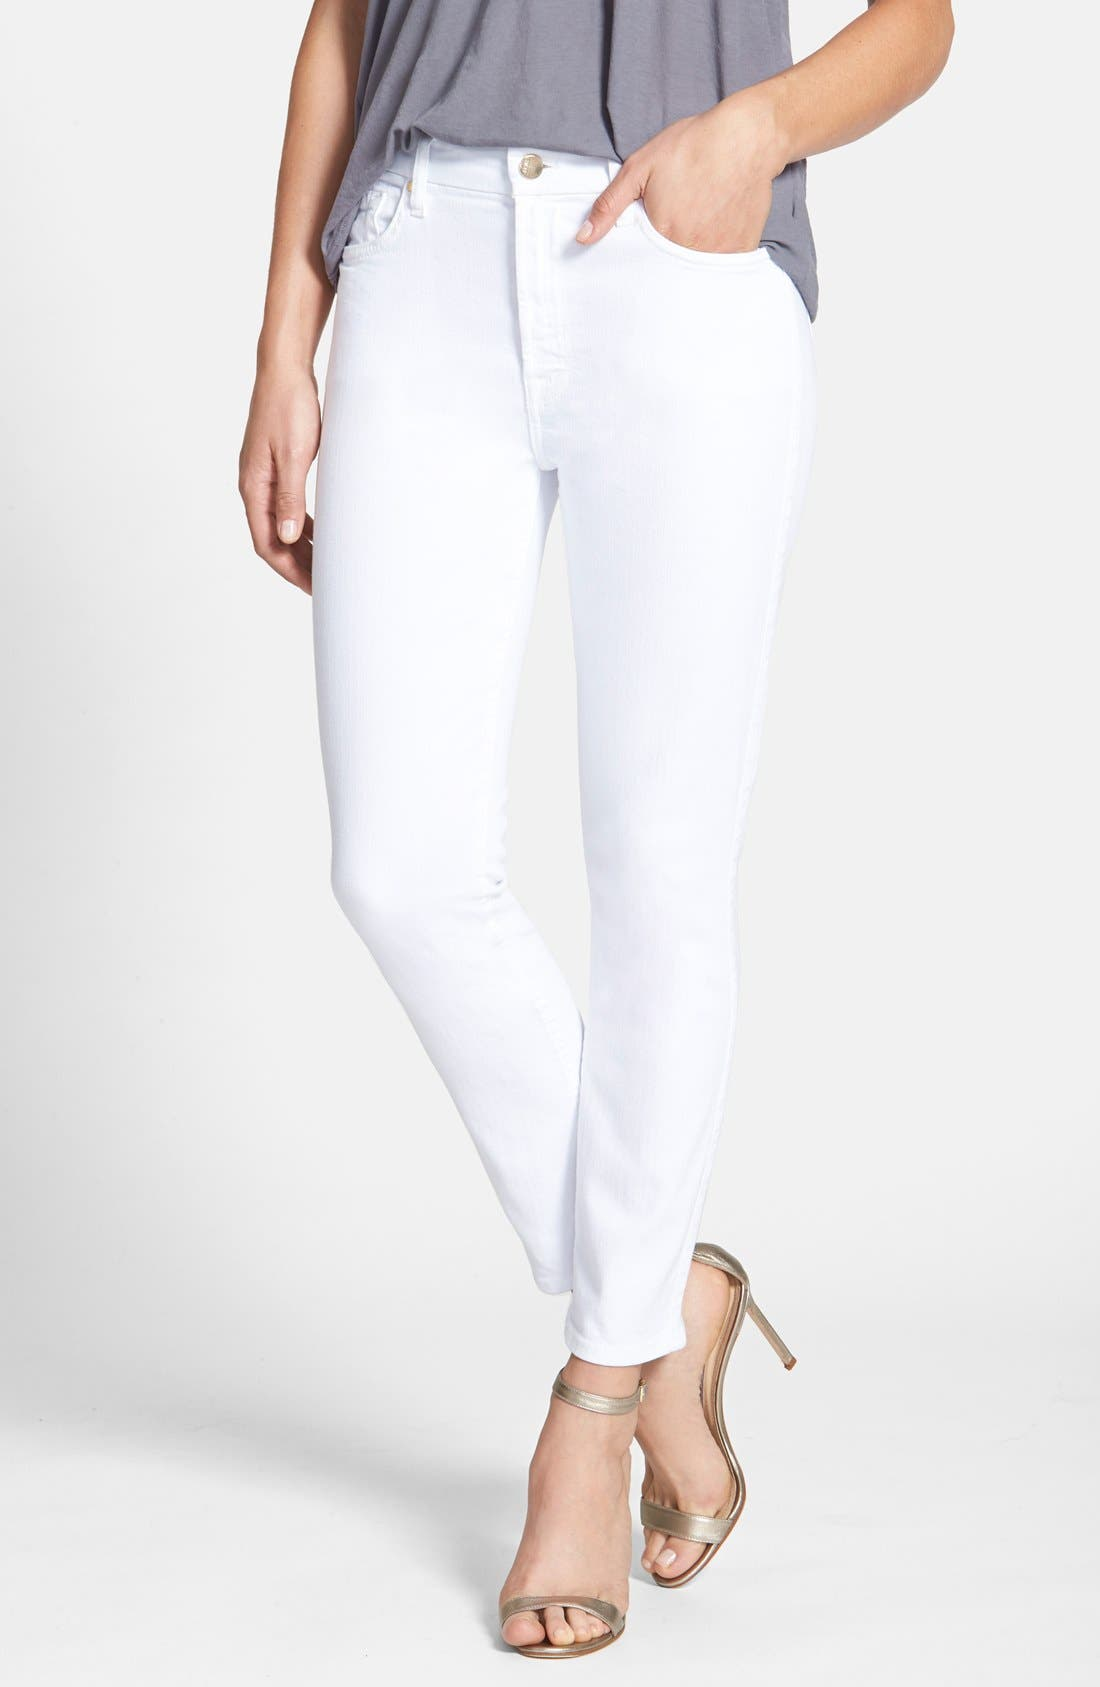 JEN7 BY 7 FOR ALL MANKIND, Stretch Crop Skinny Jeans, Main thumbnail 1, color, WHITE DENIM